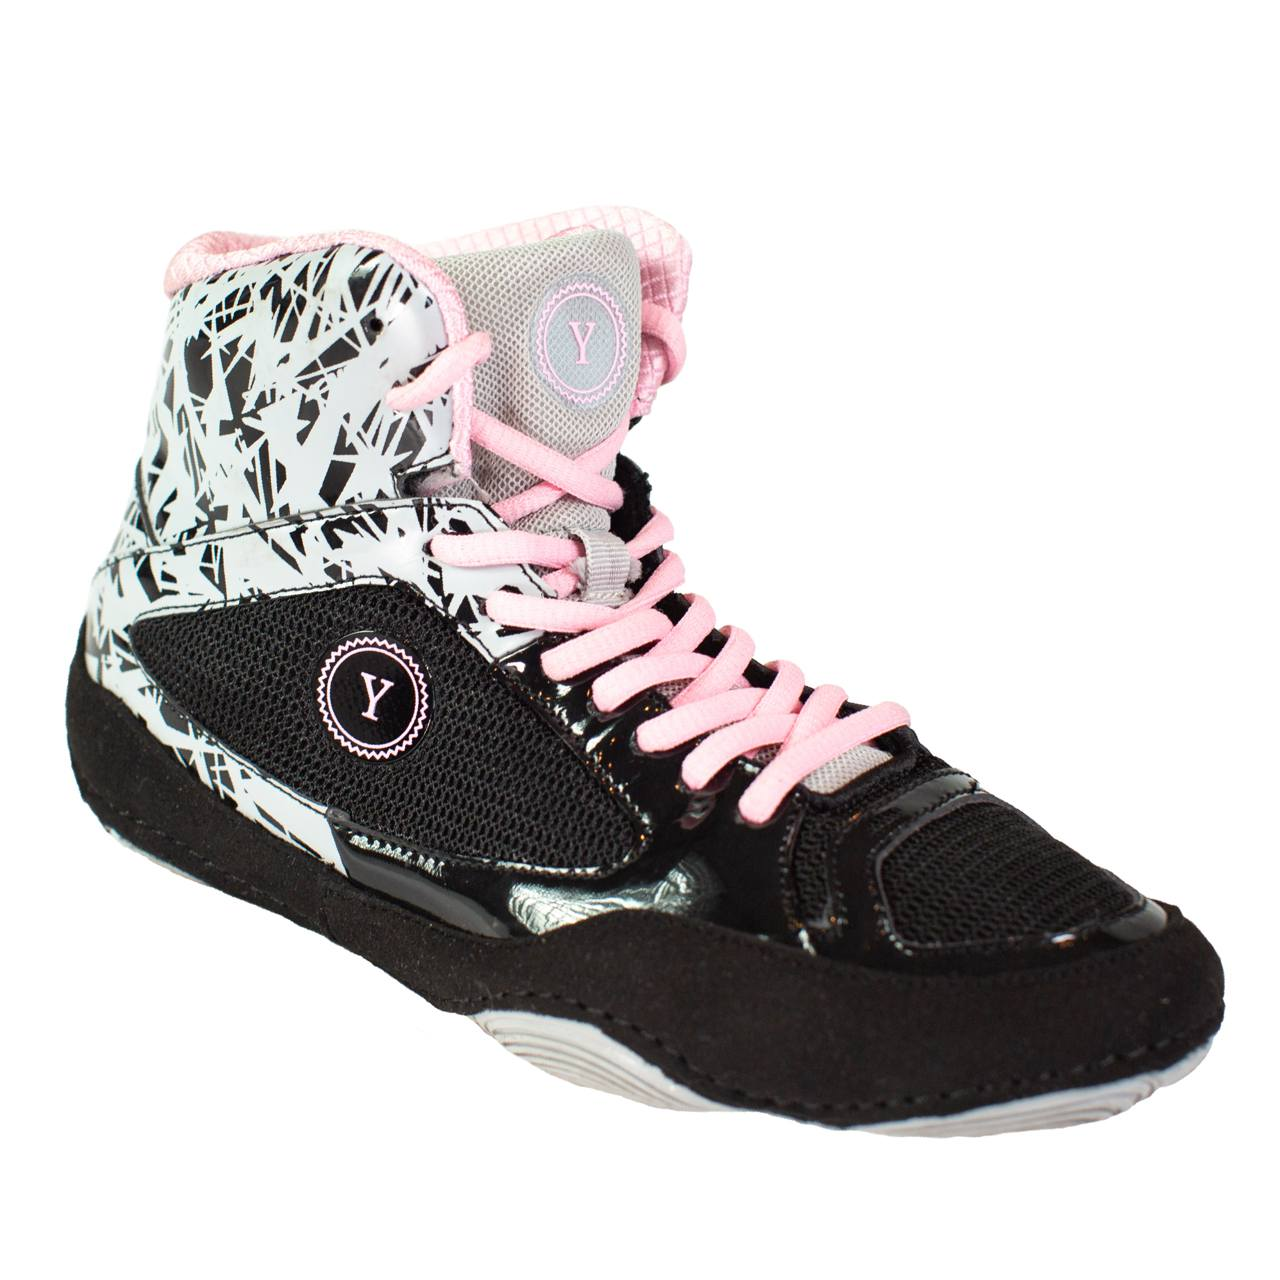 DEFIANT 1 Wrestling Shoes Shoes Yes! Athletics USA